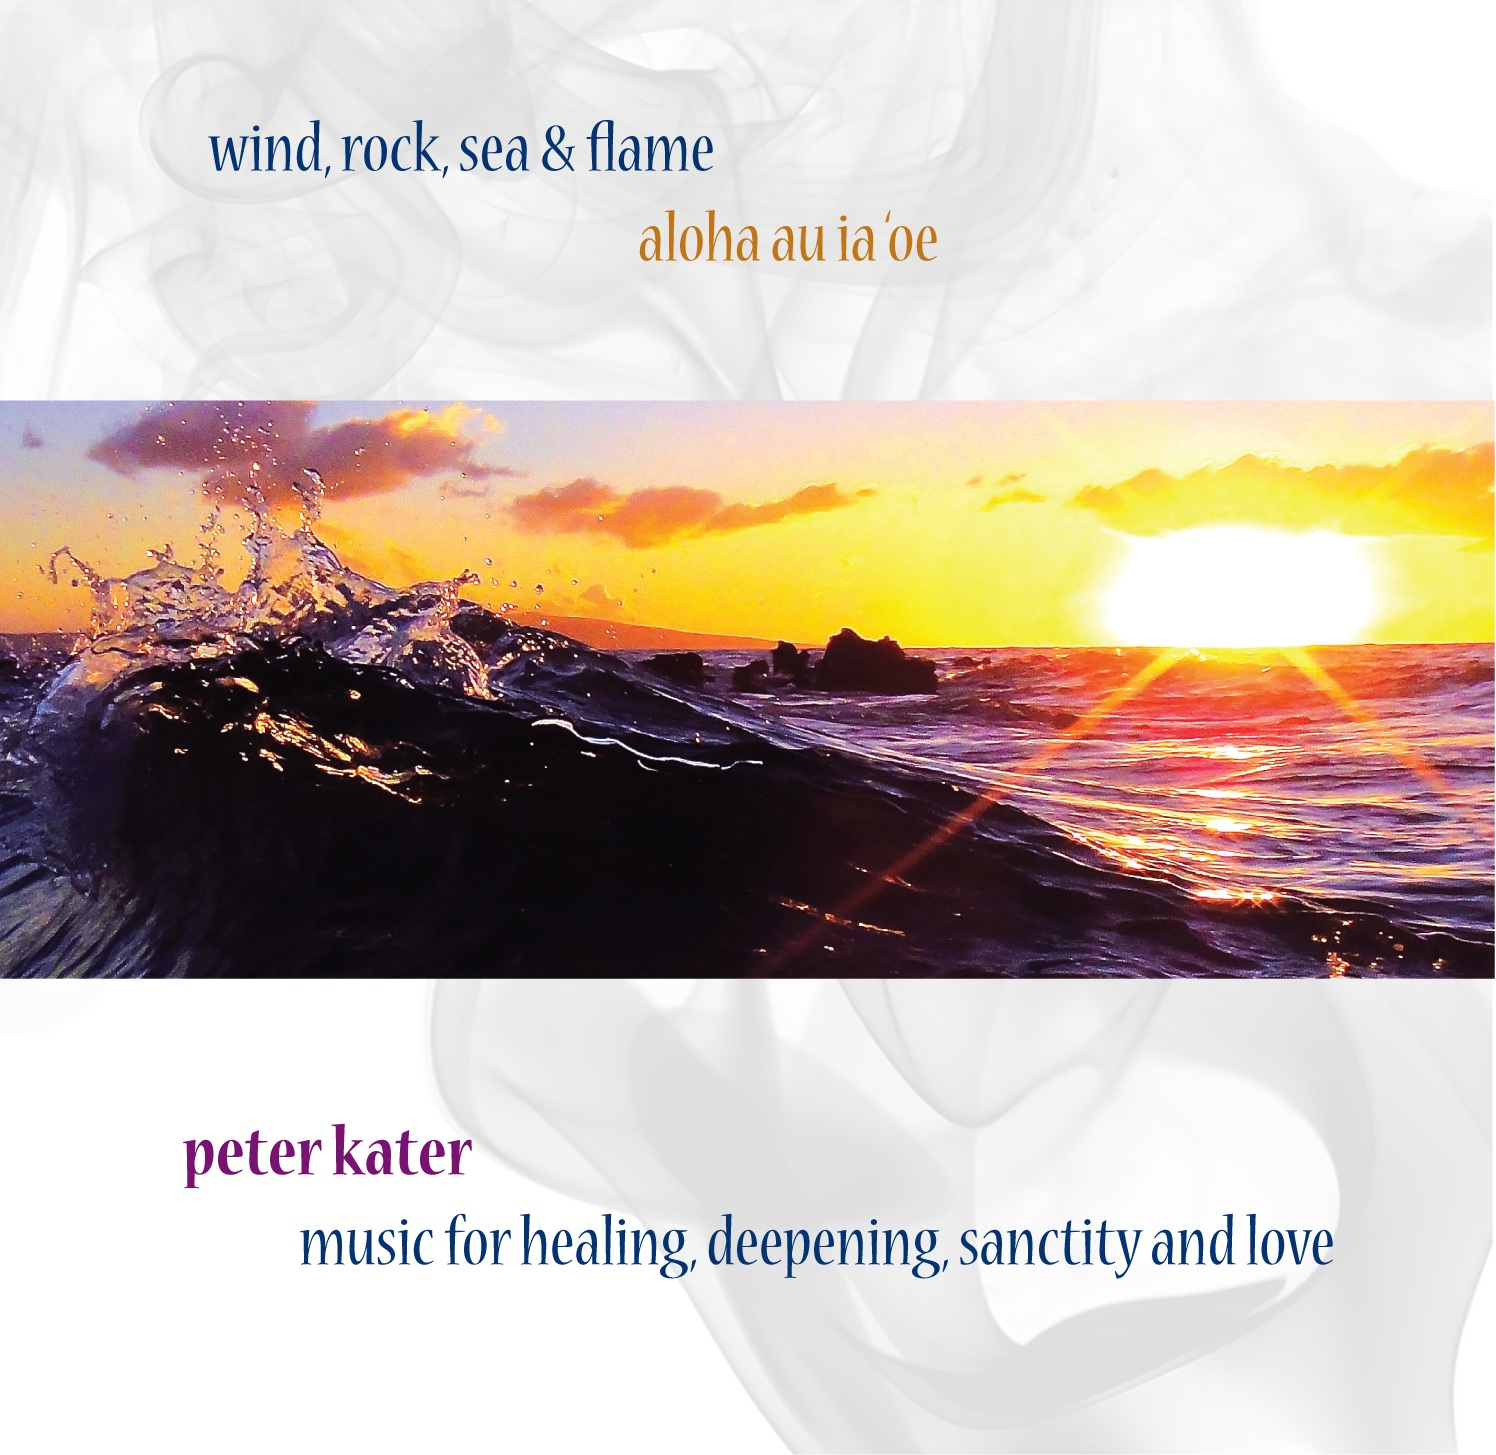 WIND, ROCK, SEA & FLAME BY PETER KATER